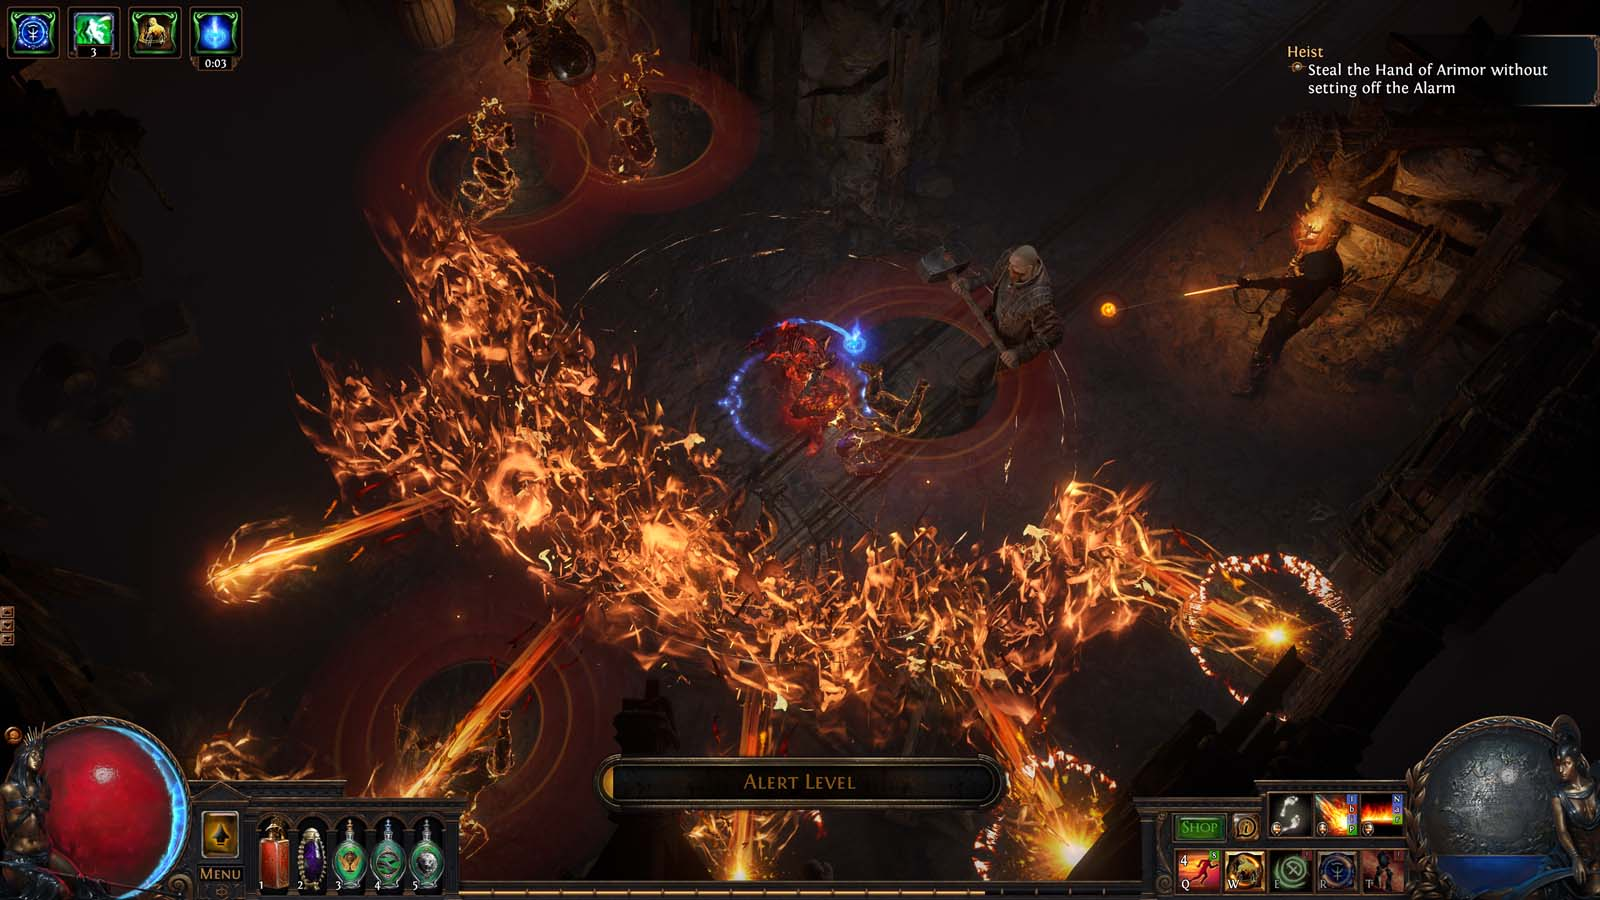 Path Of Exile Heists guide